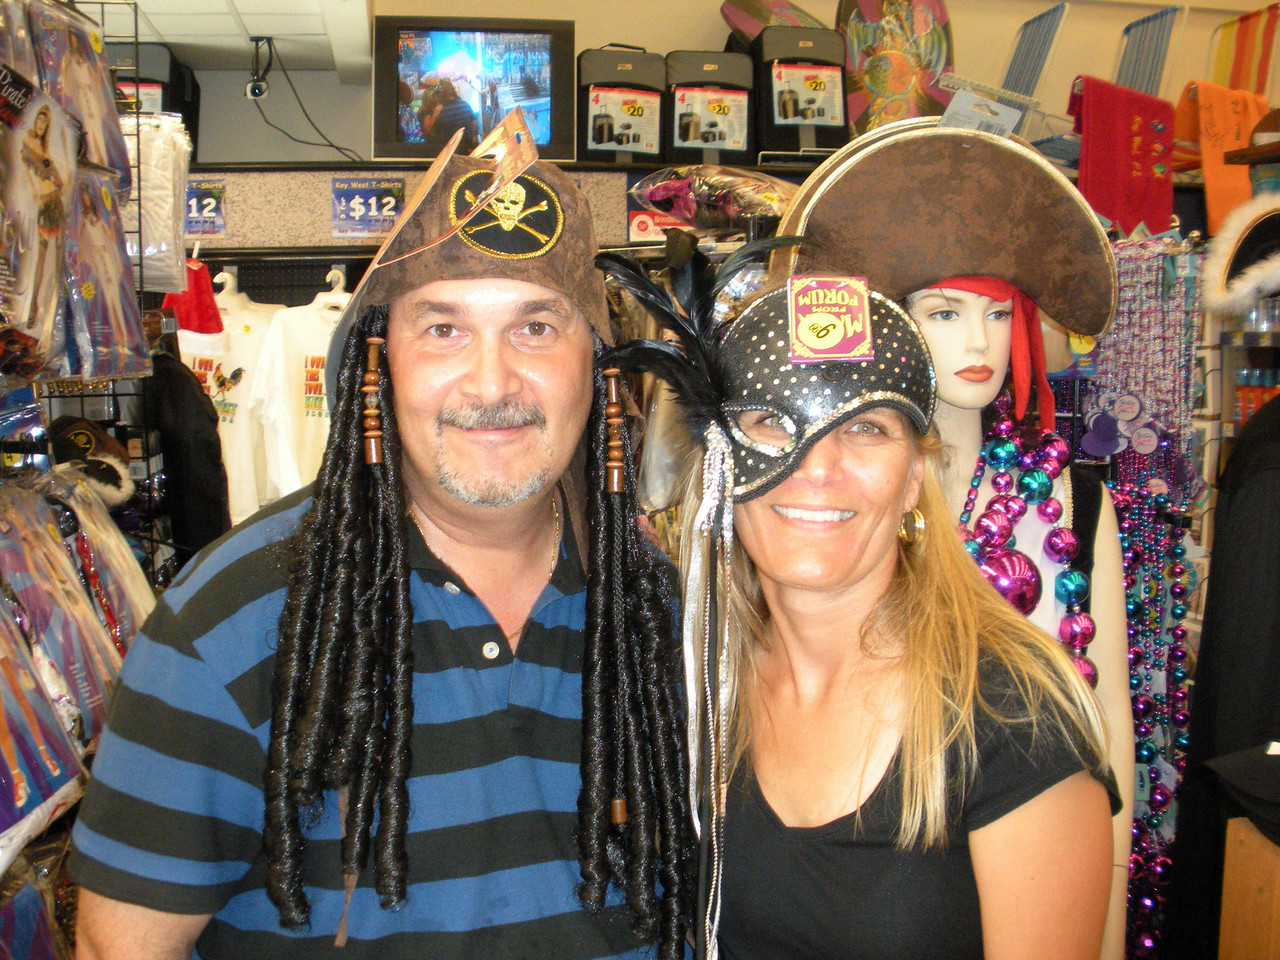 The 2008 theme had to do with pirates, so this lovely couple was trying on costumes at the Walgreen's. There's no mirror, so I showed them their photo on my camera's LCD screen.